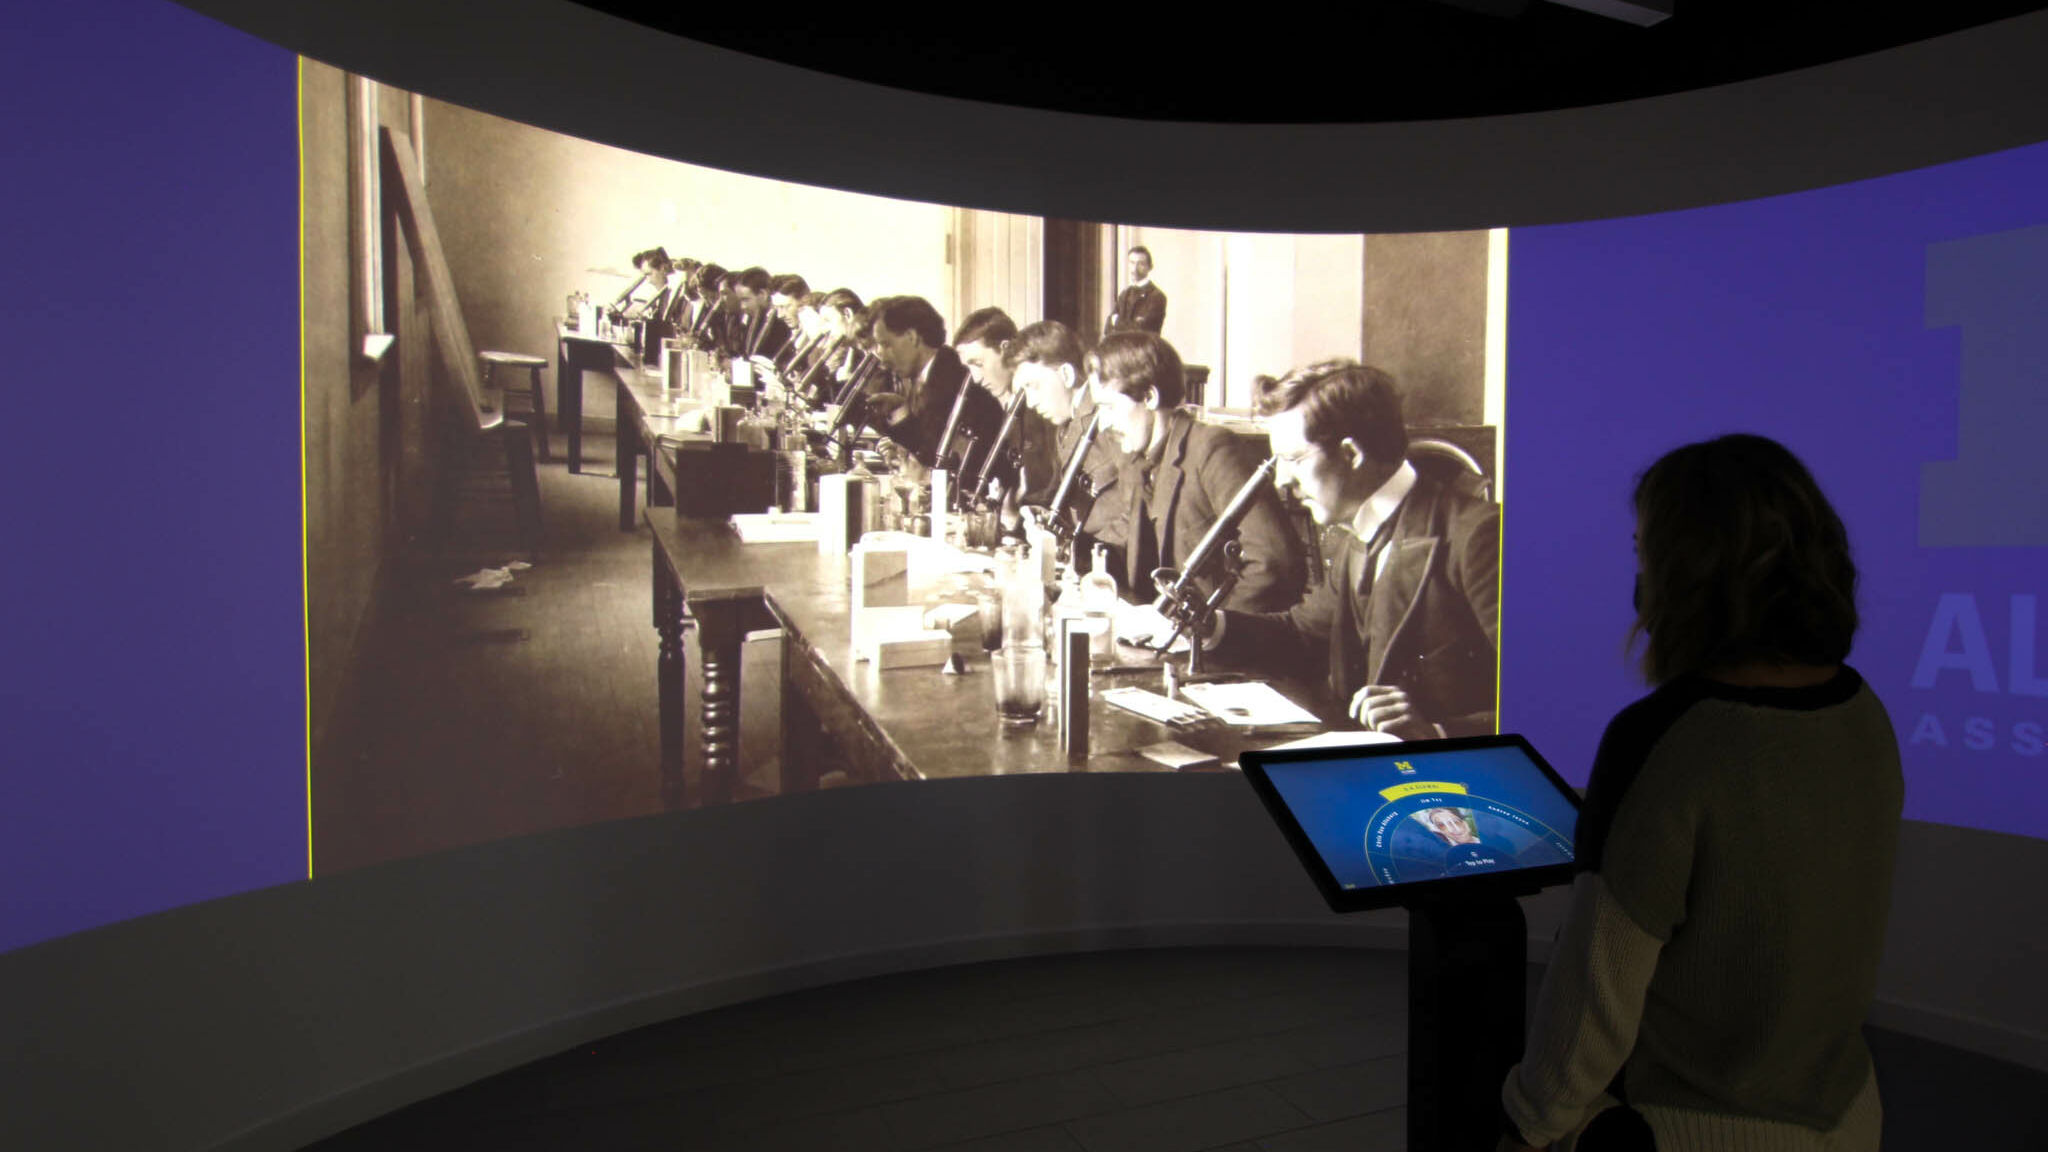 A visitor watches historical imagery in the University of Michigan Alumni Center Immersion Room